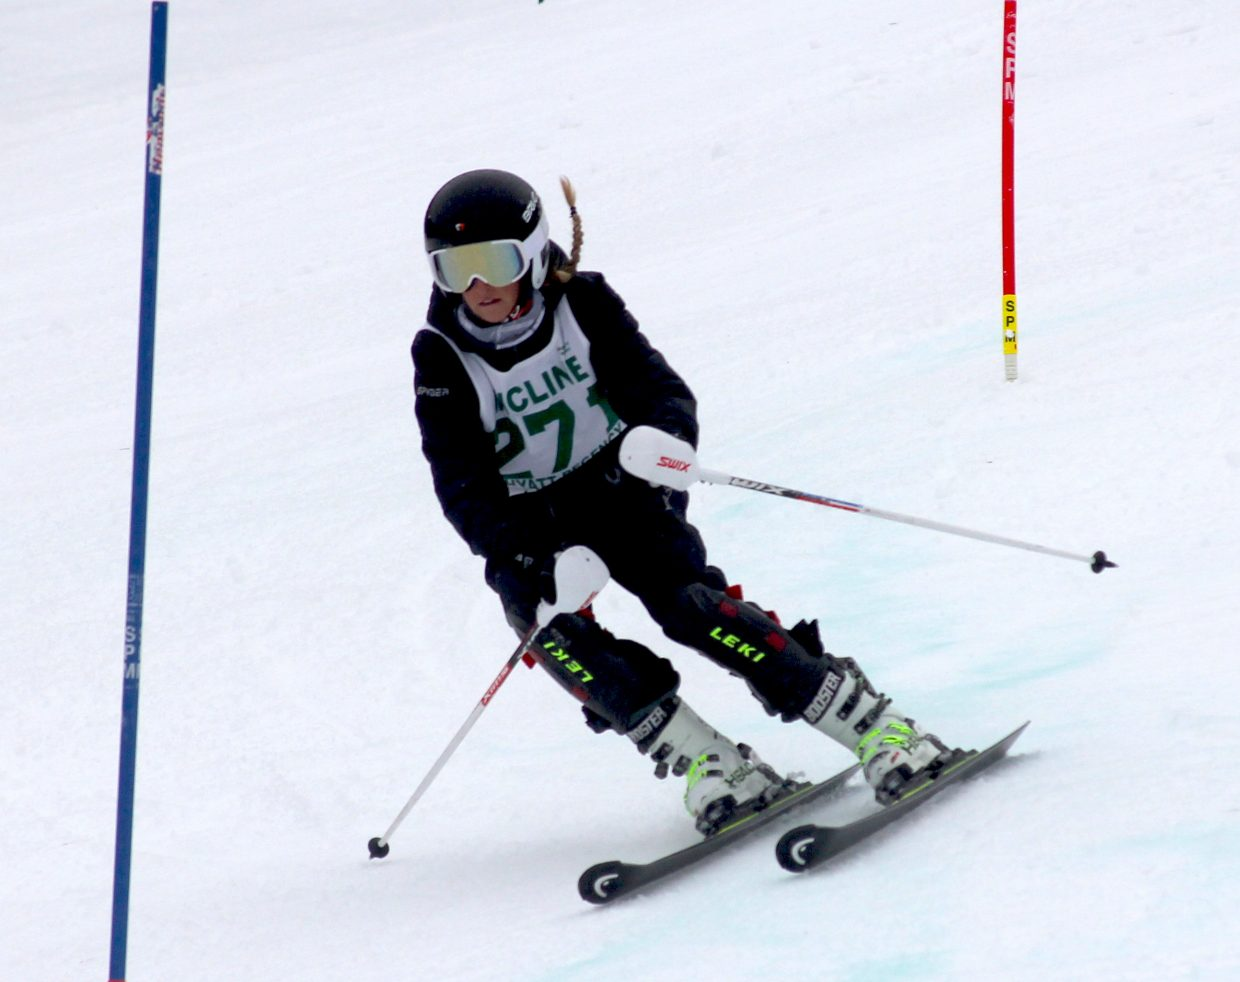 Incline's Brenna Ritchie speeds down the slalom course at Heavenly.